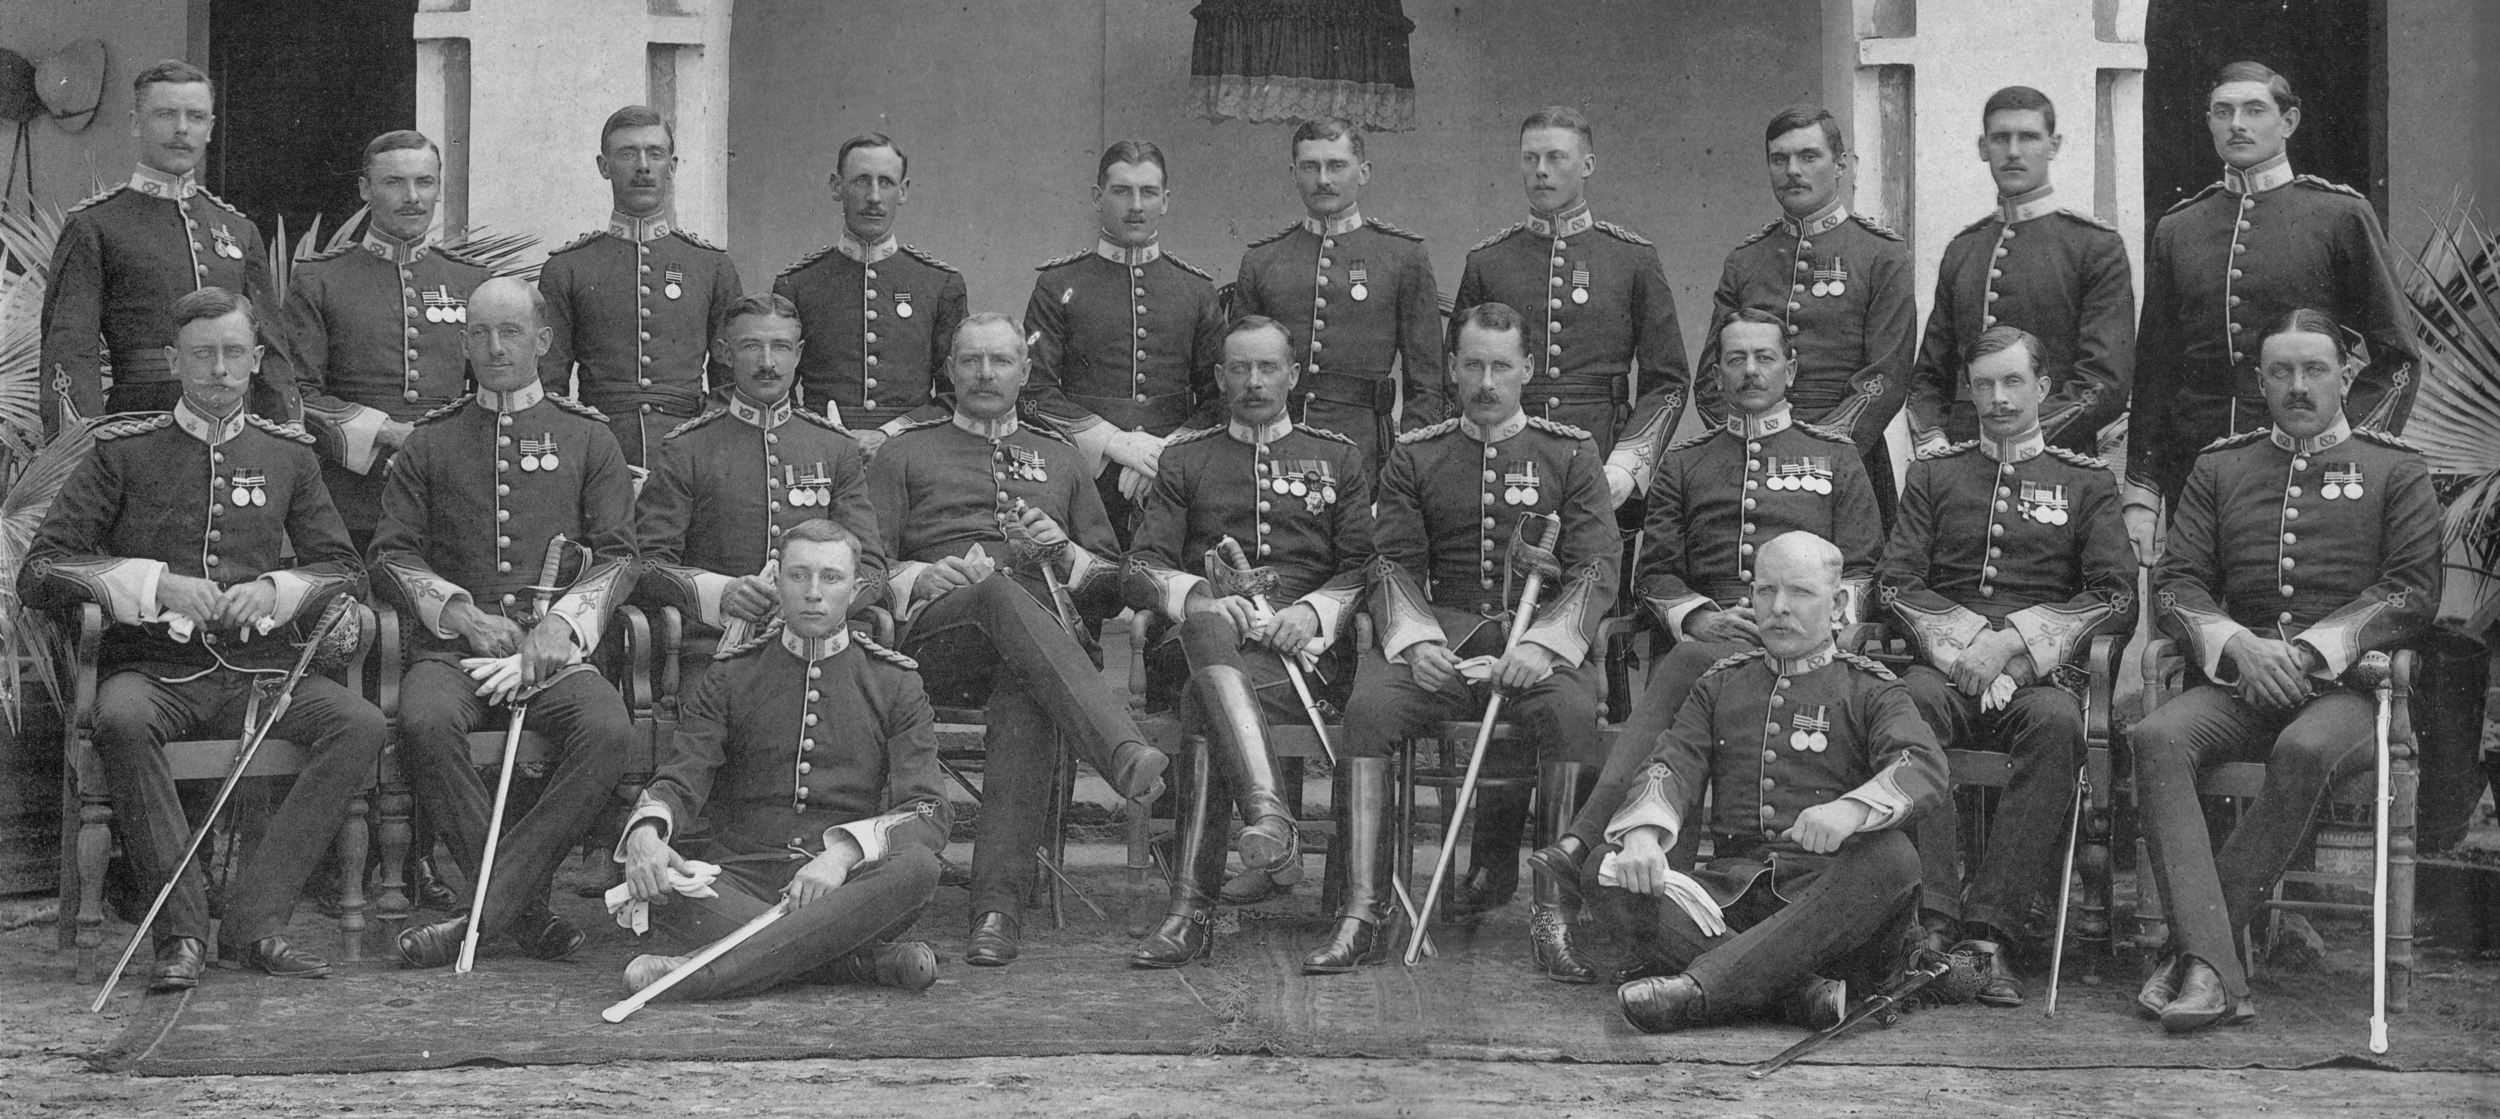 Officers of the 2nd Battalion The Prince of Wales (North Staffordshire Regiment) outside the officers mess Multan, India 1908